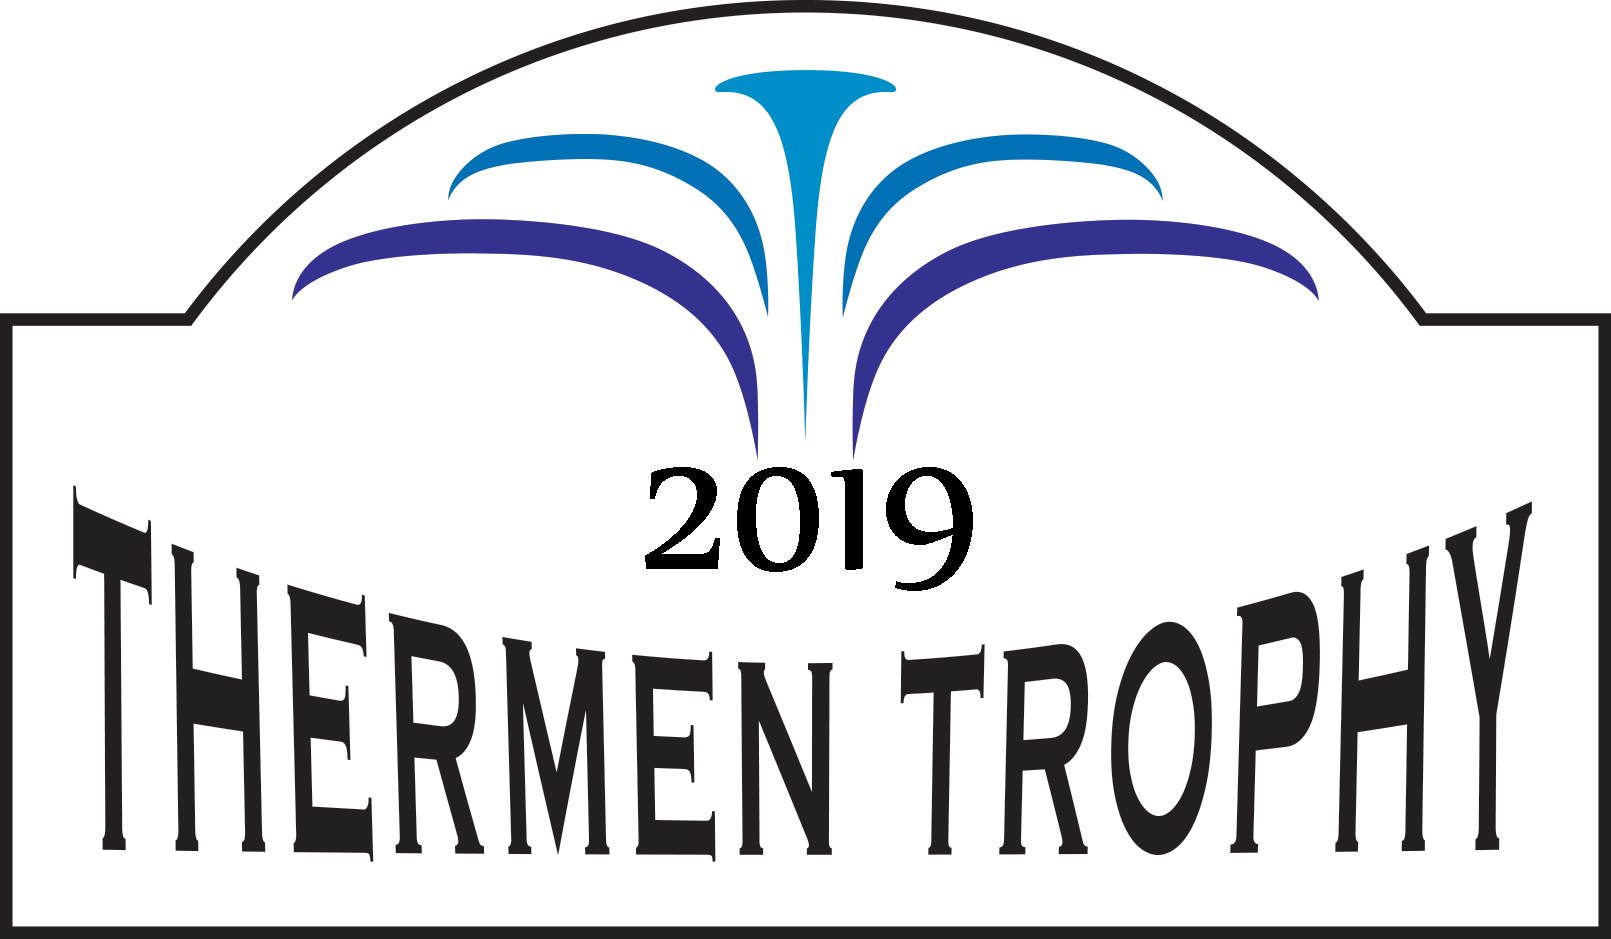 thermentrophy logo 2019